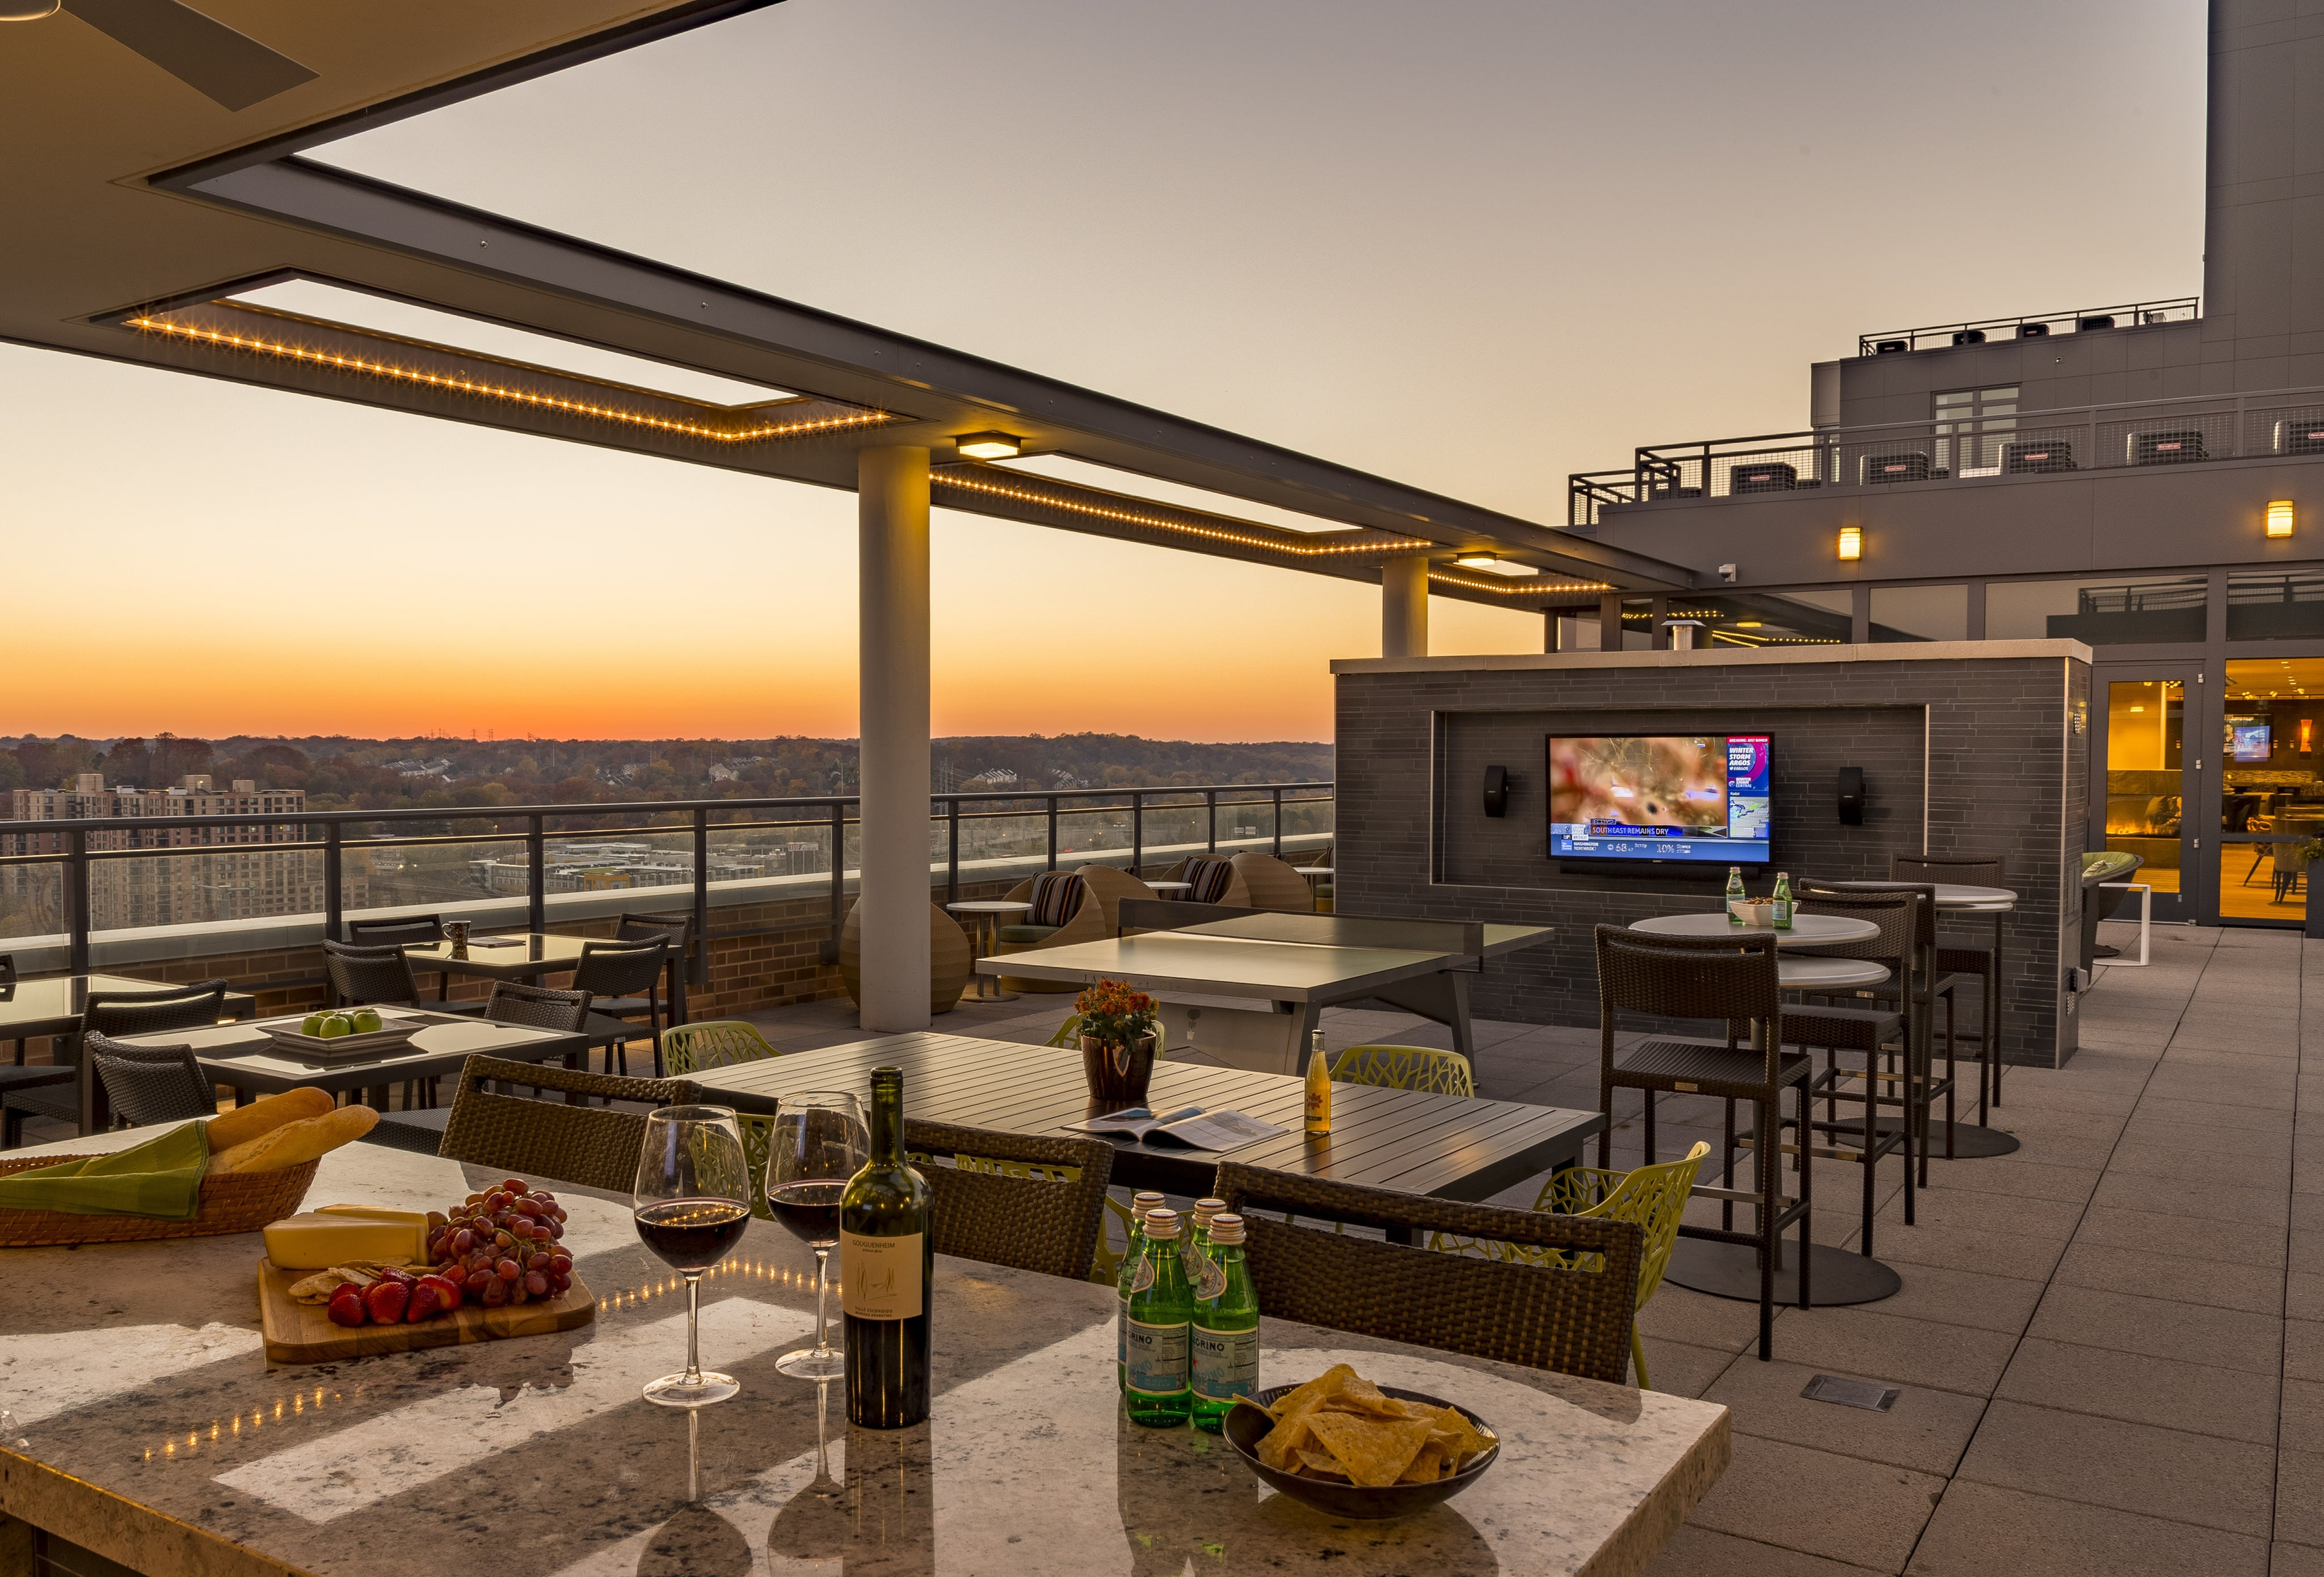 Norstone Lynia Basalt Interlocking Tile used on a focal wall in an upscale rooftop lounge in Washington, D.C.